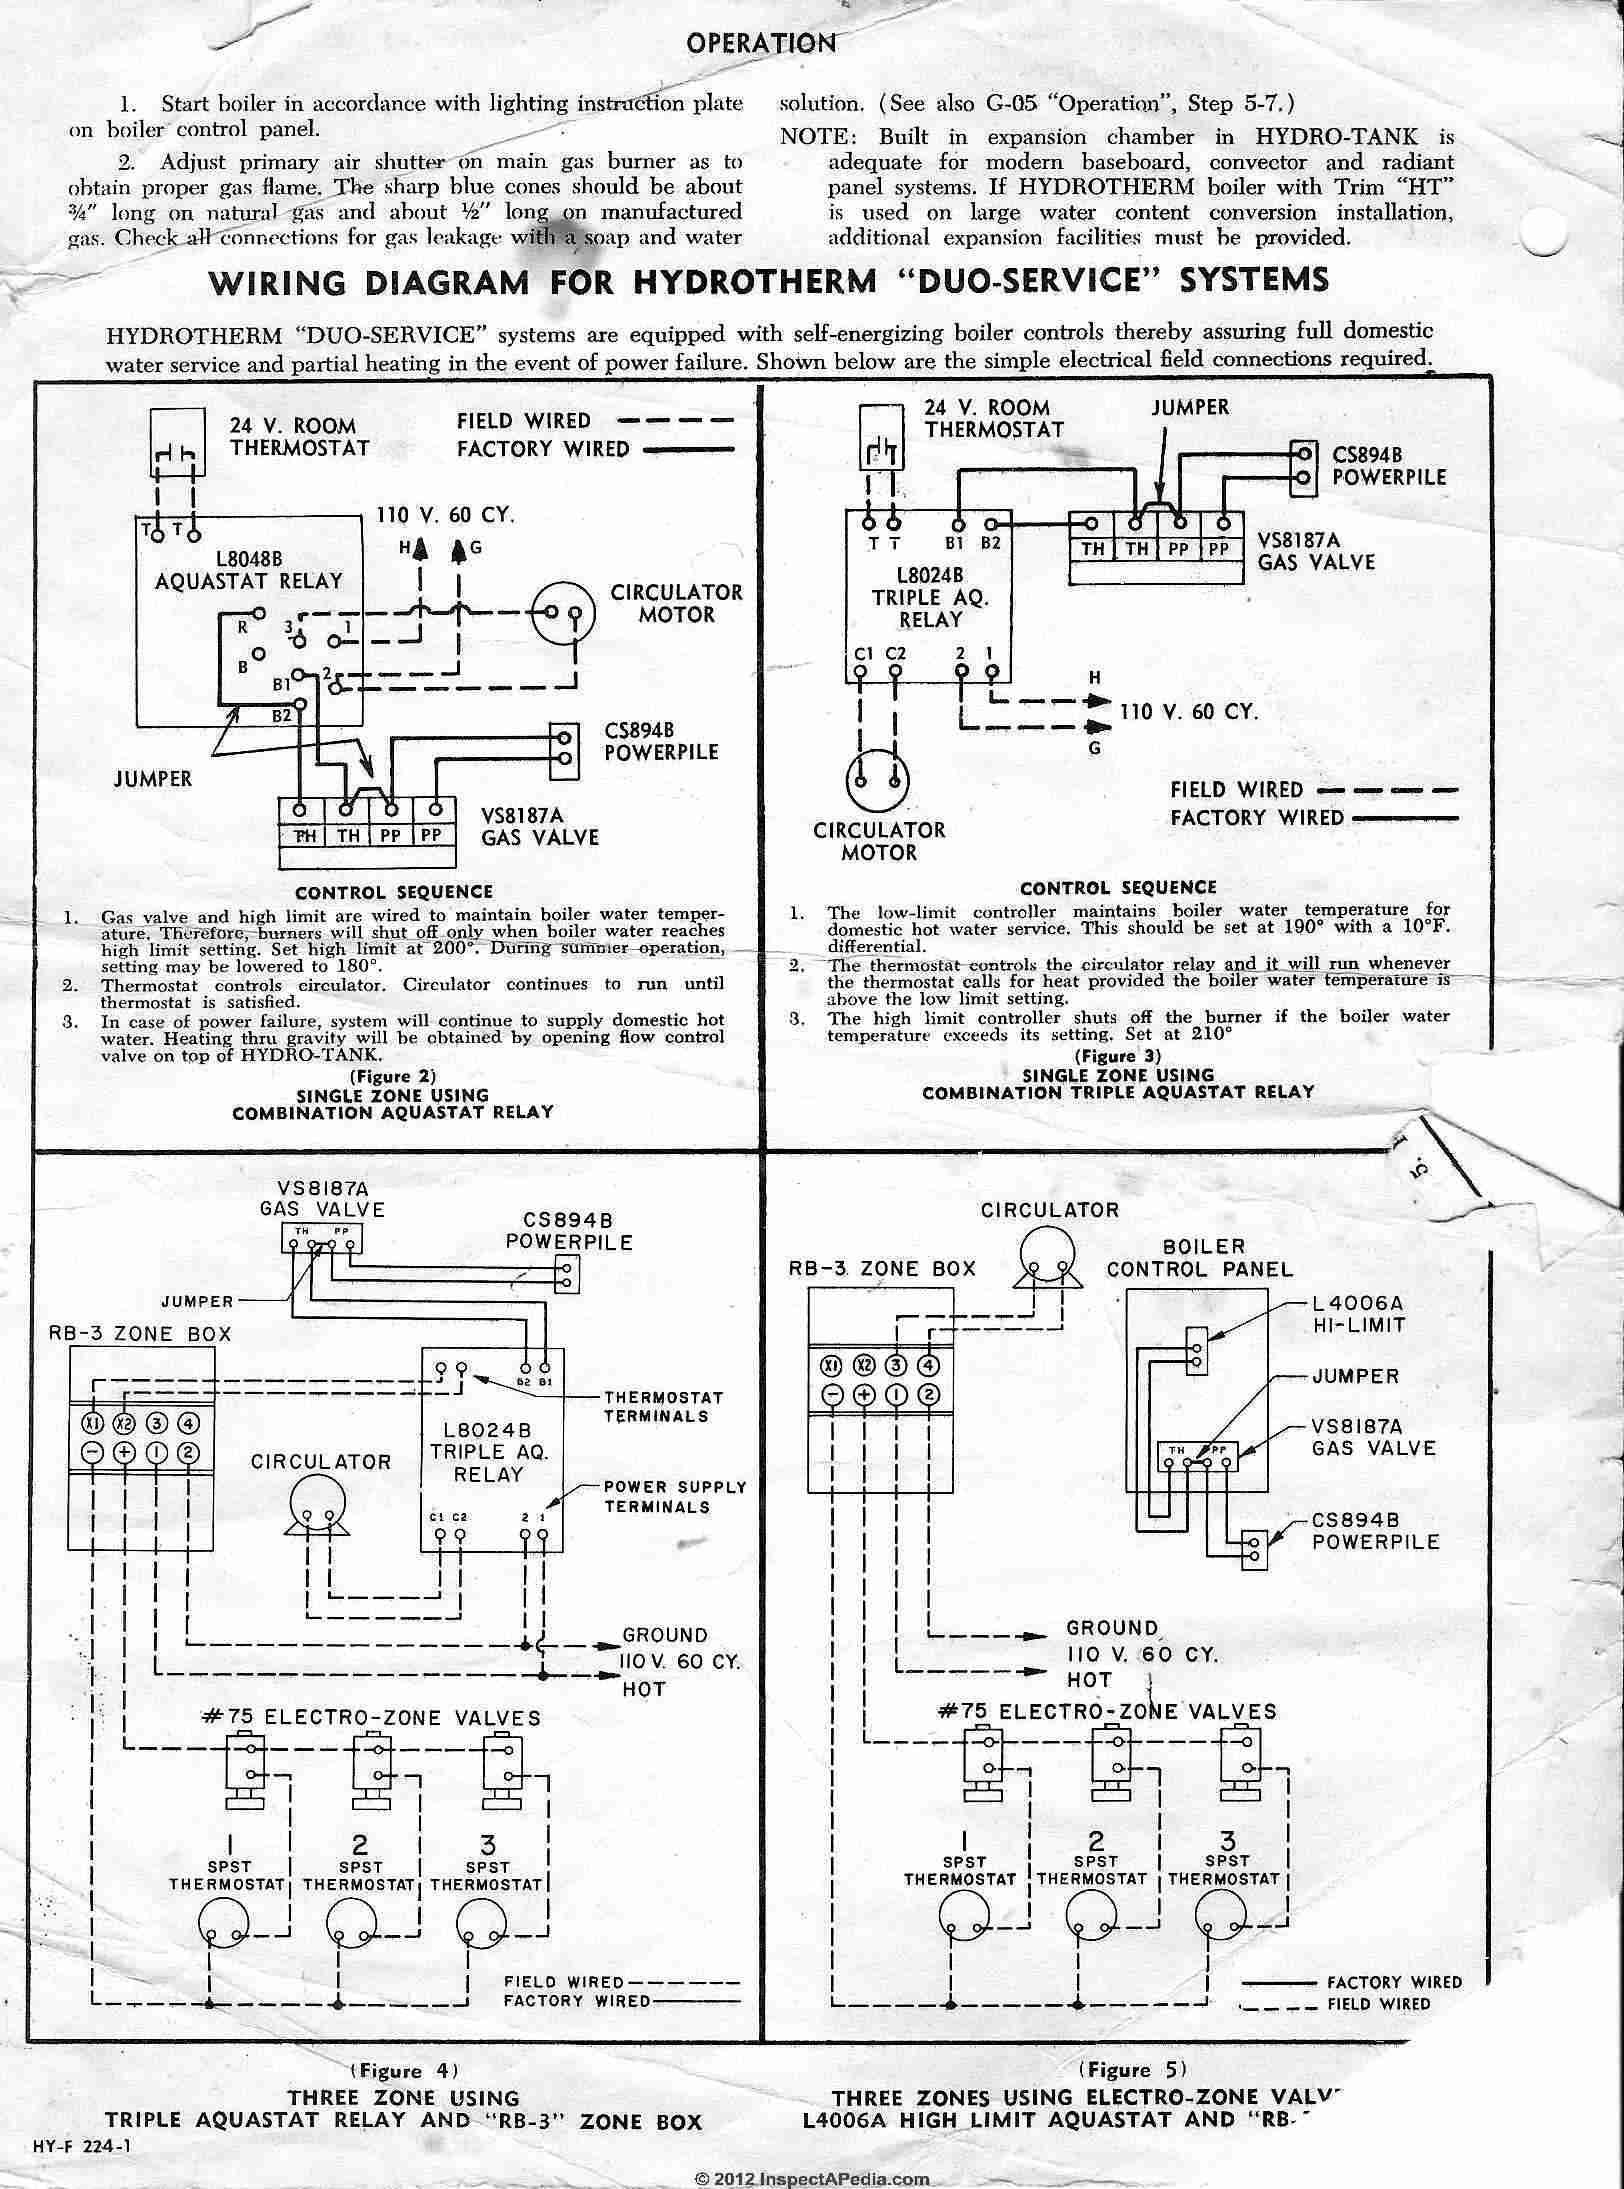 honeywell 8124 aquastat wiring diagram wiring diagram for light rh prestonfarmmotors co Honeywell Boiler Aquastat Aquastat Relay Type L8148E Problems